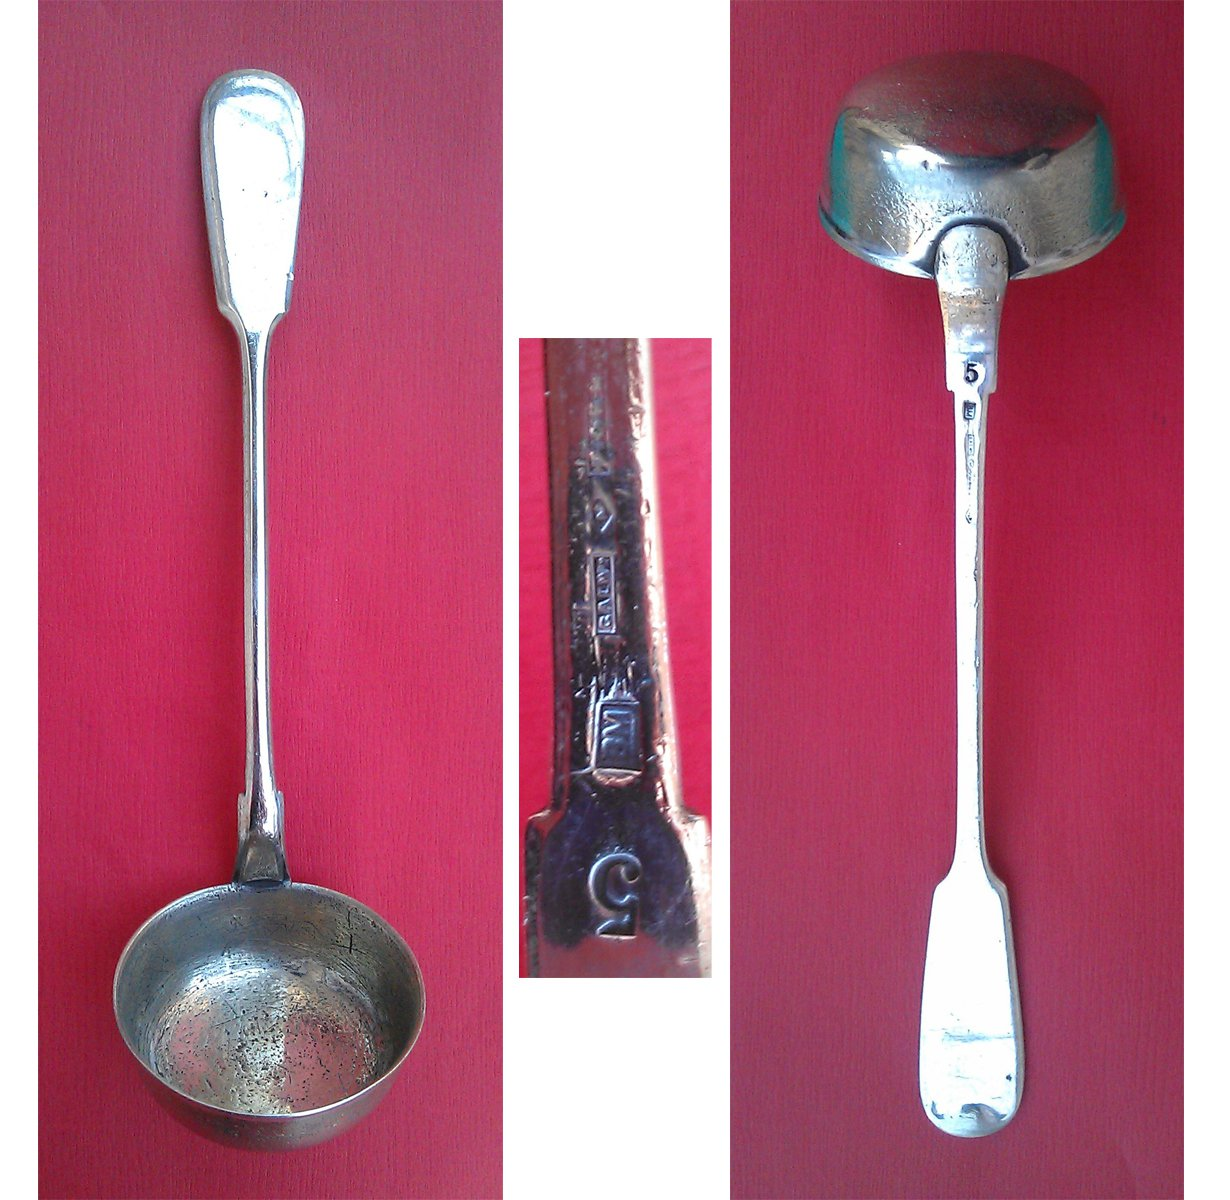 Ladle silver plated origin Poland after 1914